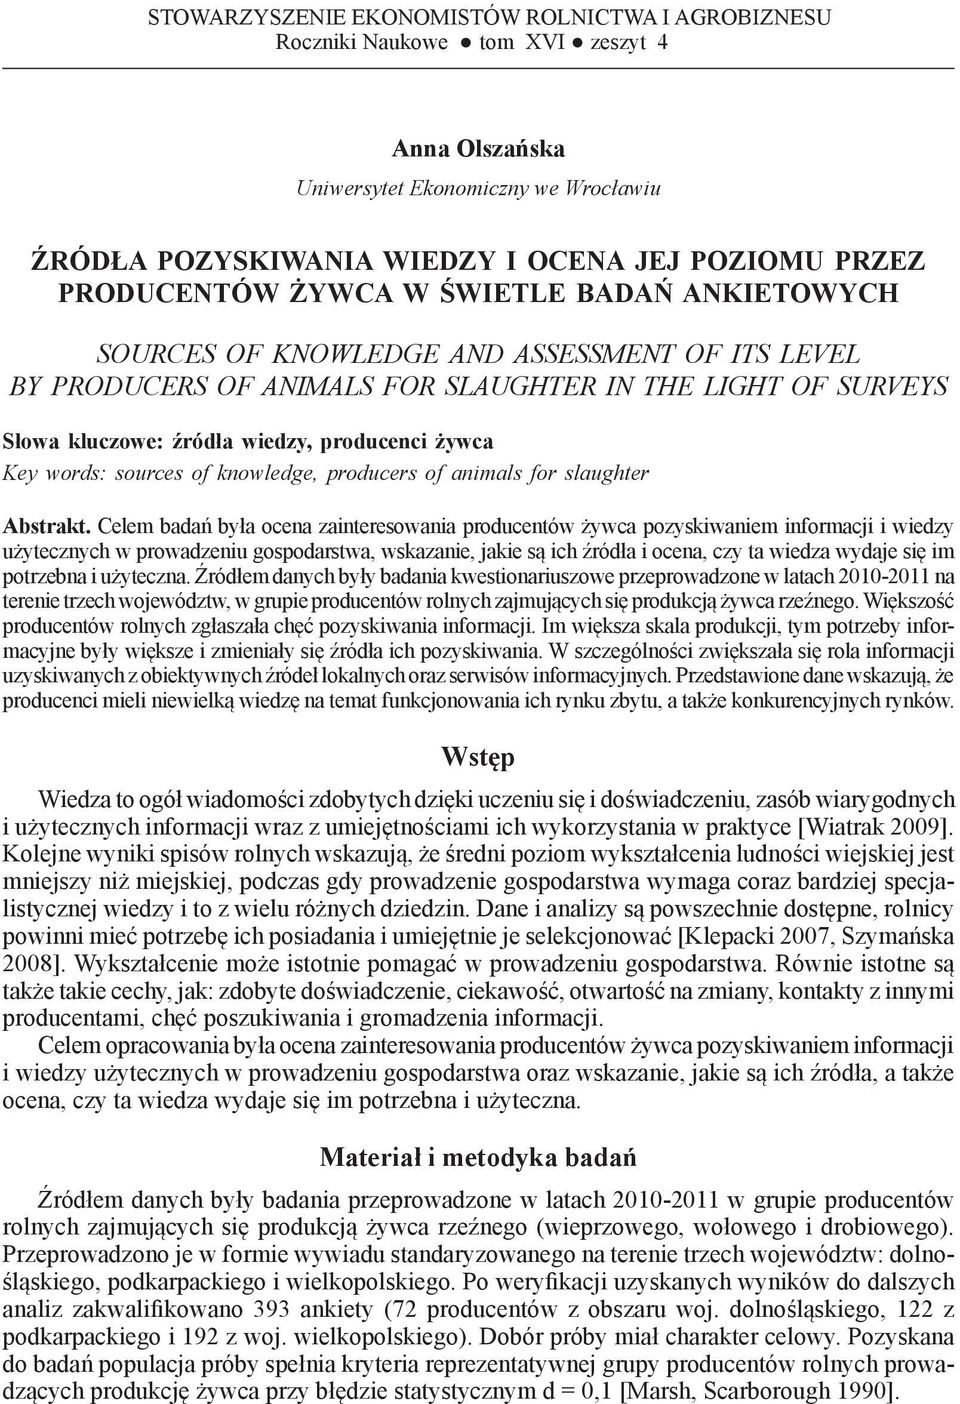 OF KNOWLEDGE AND ASSESSMENT OF ITS LEVEL BY PRODUCERS of animals for slaughter IN THE LIGHT OF SURVEYS Słowa kluczowe: źródła wiedzy, producenci żywca Key words: sources of knowledge, producers of